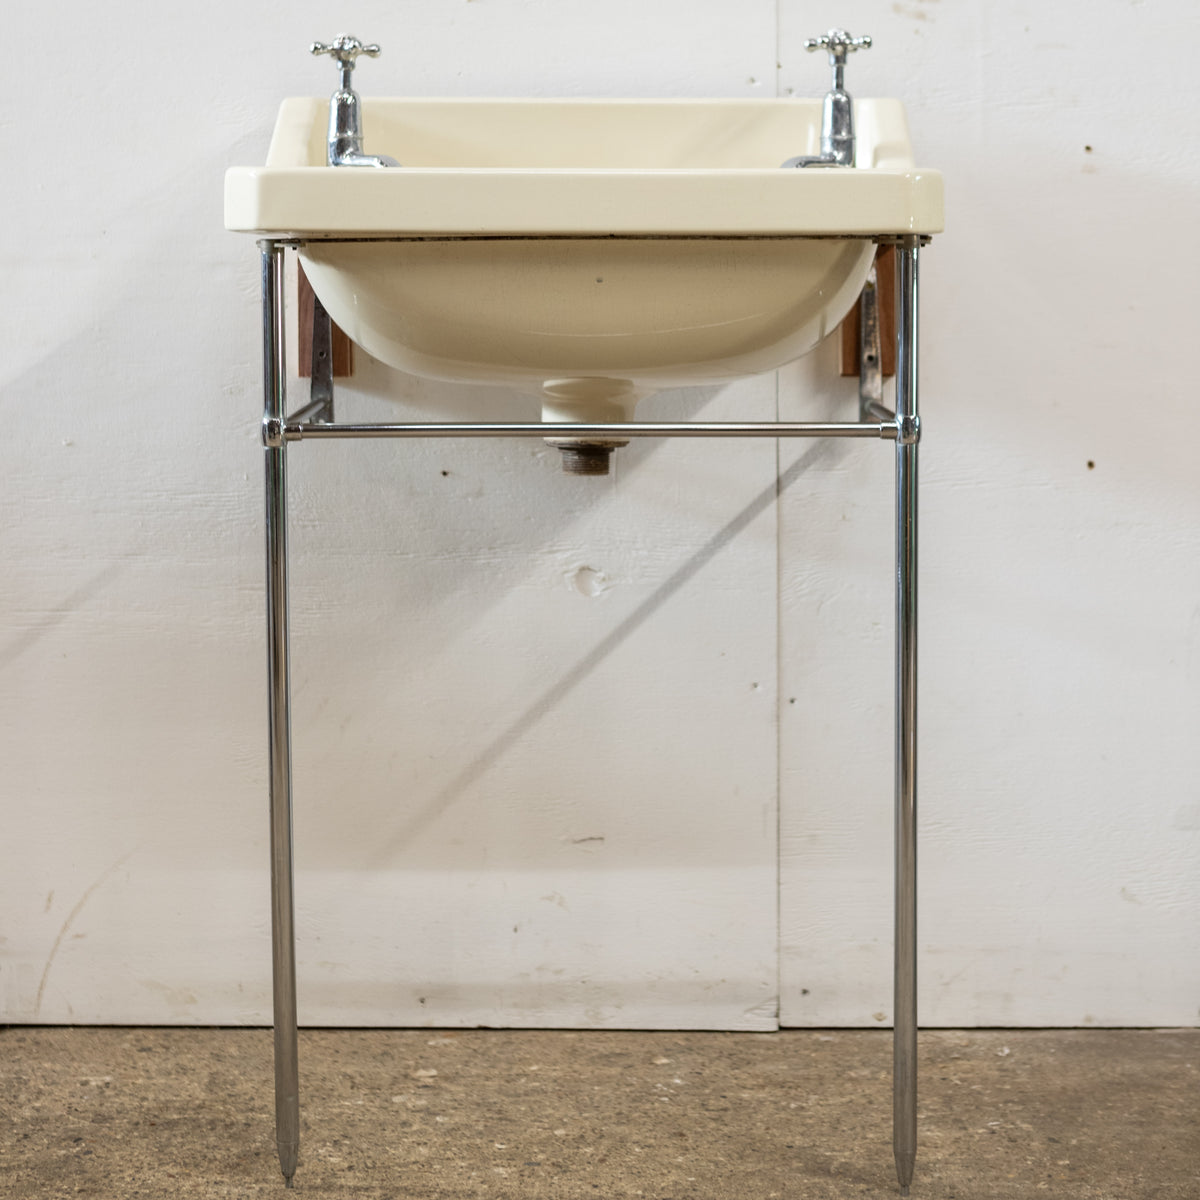 Reclaimed Twyfords Sink With Taps & Optional Legs | The Architectural Forum